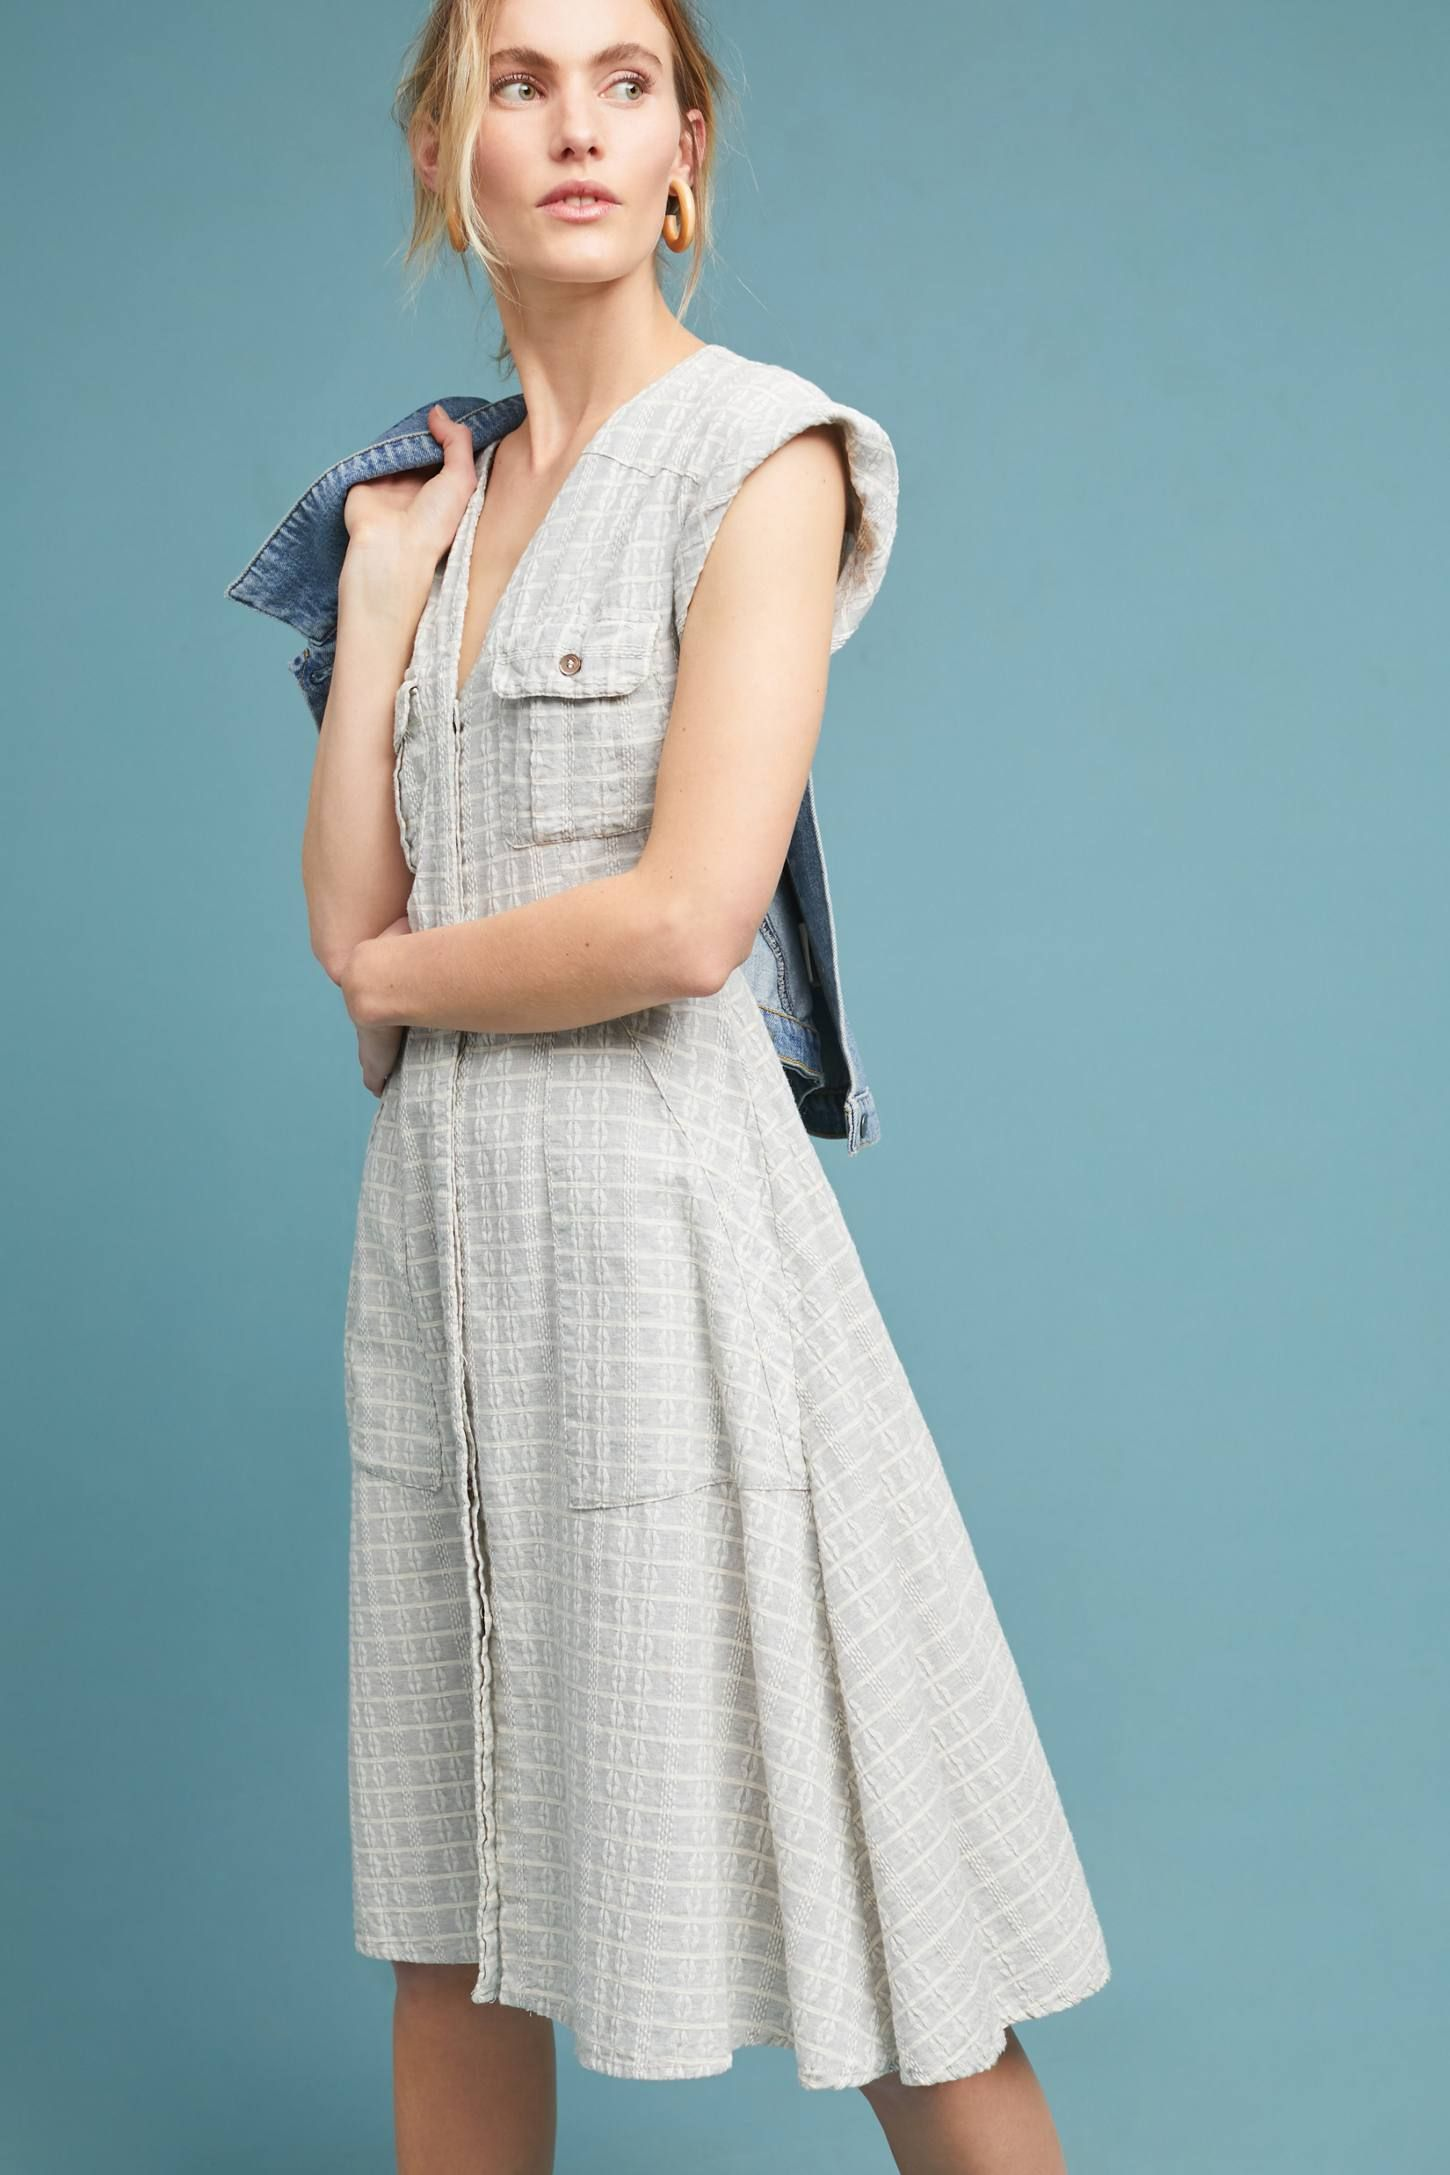 Spring is in the air and I need some light dresses! Windowpane ...